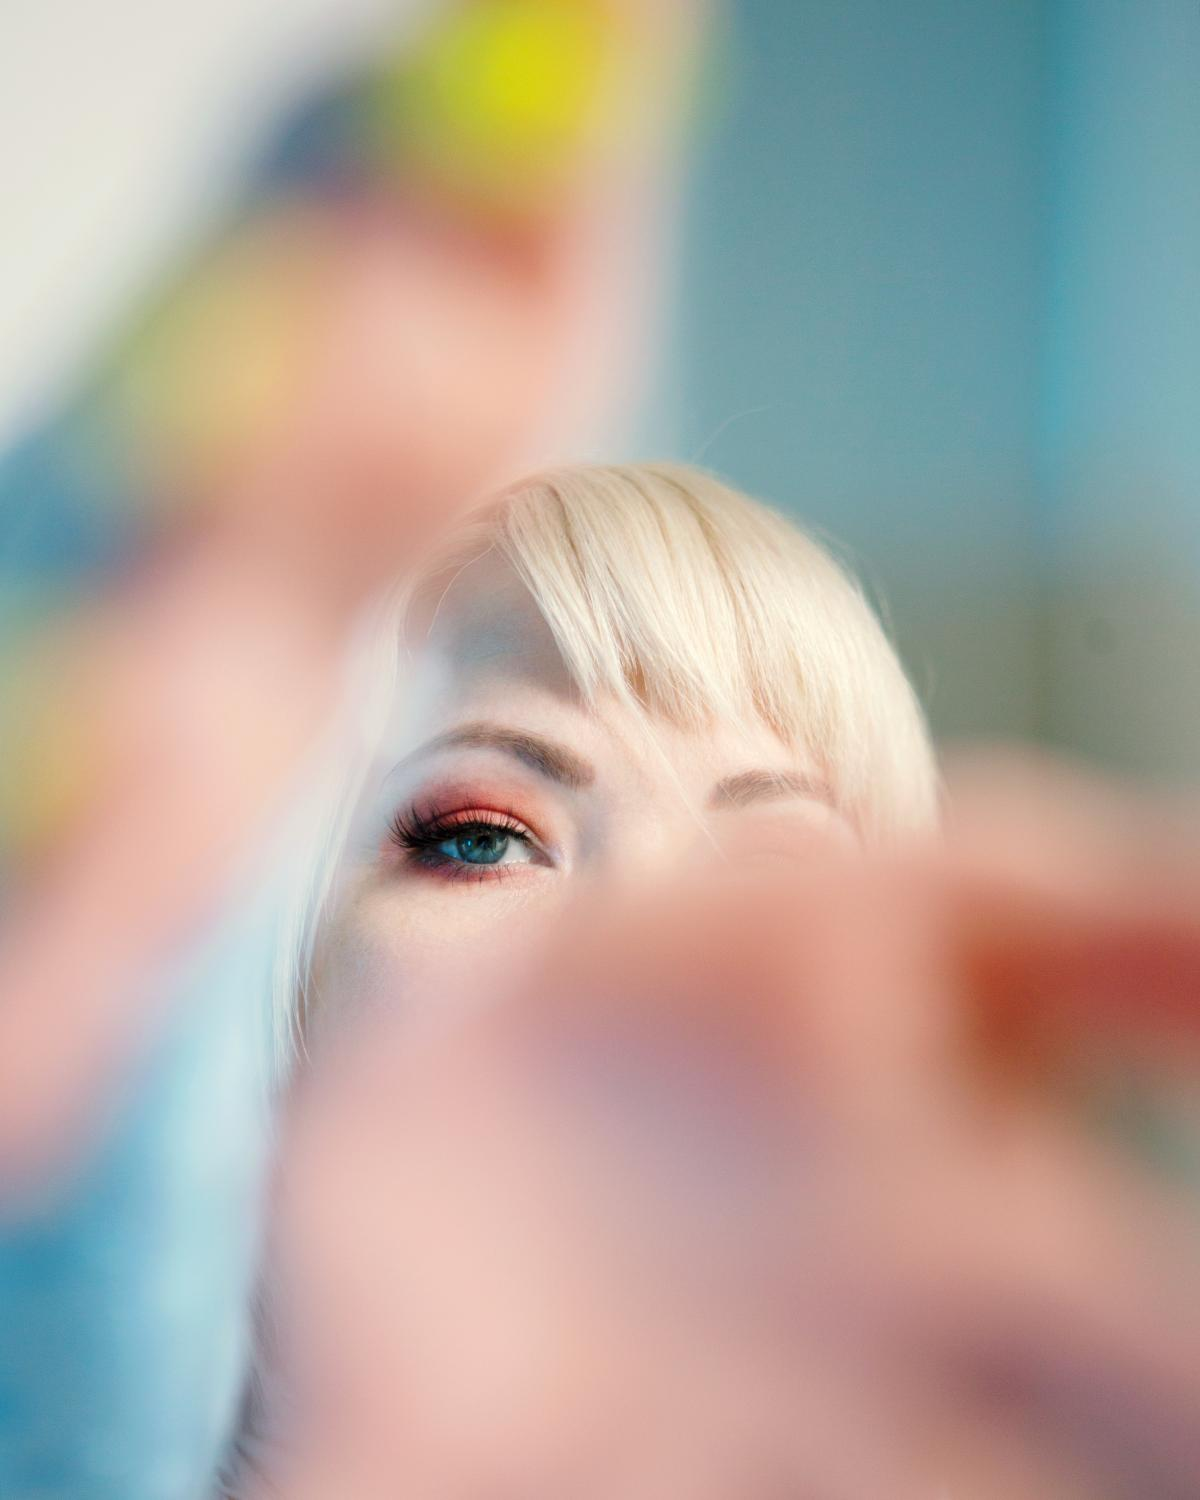 Art and Documentary Photography - Loading CarlyRaeJepsen_MaryKang_034.JPG